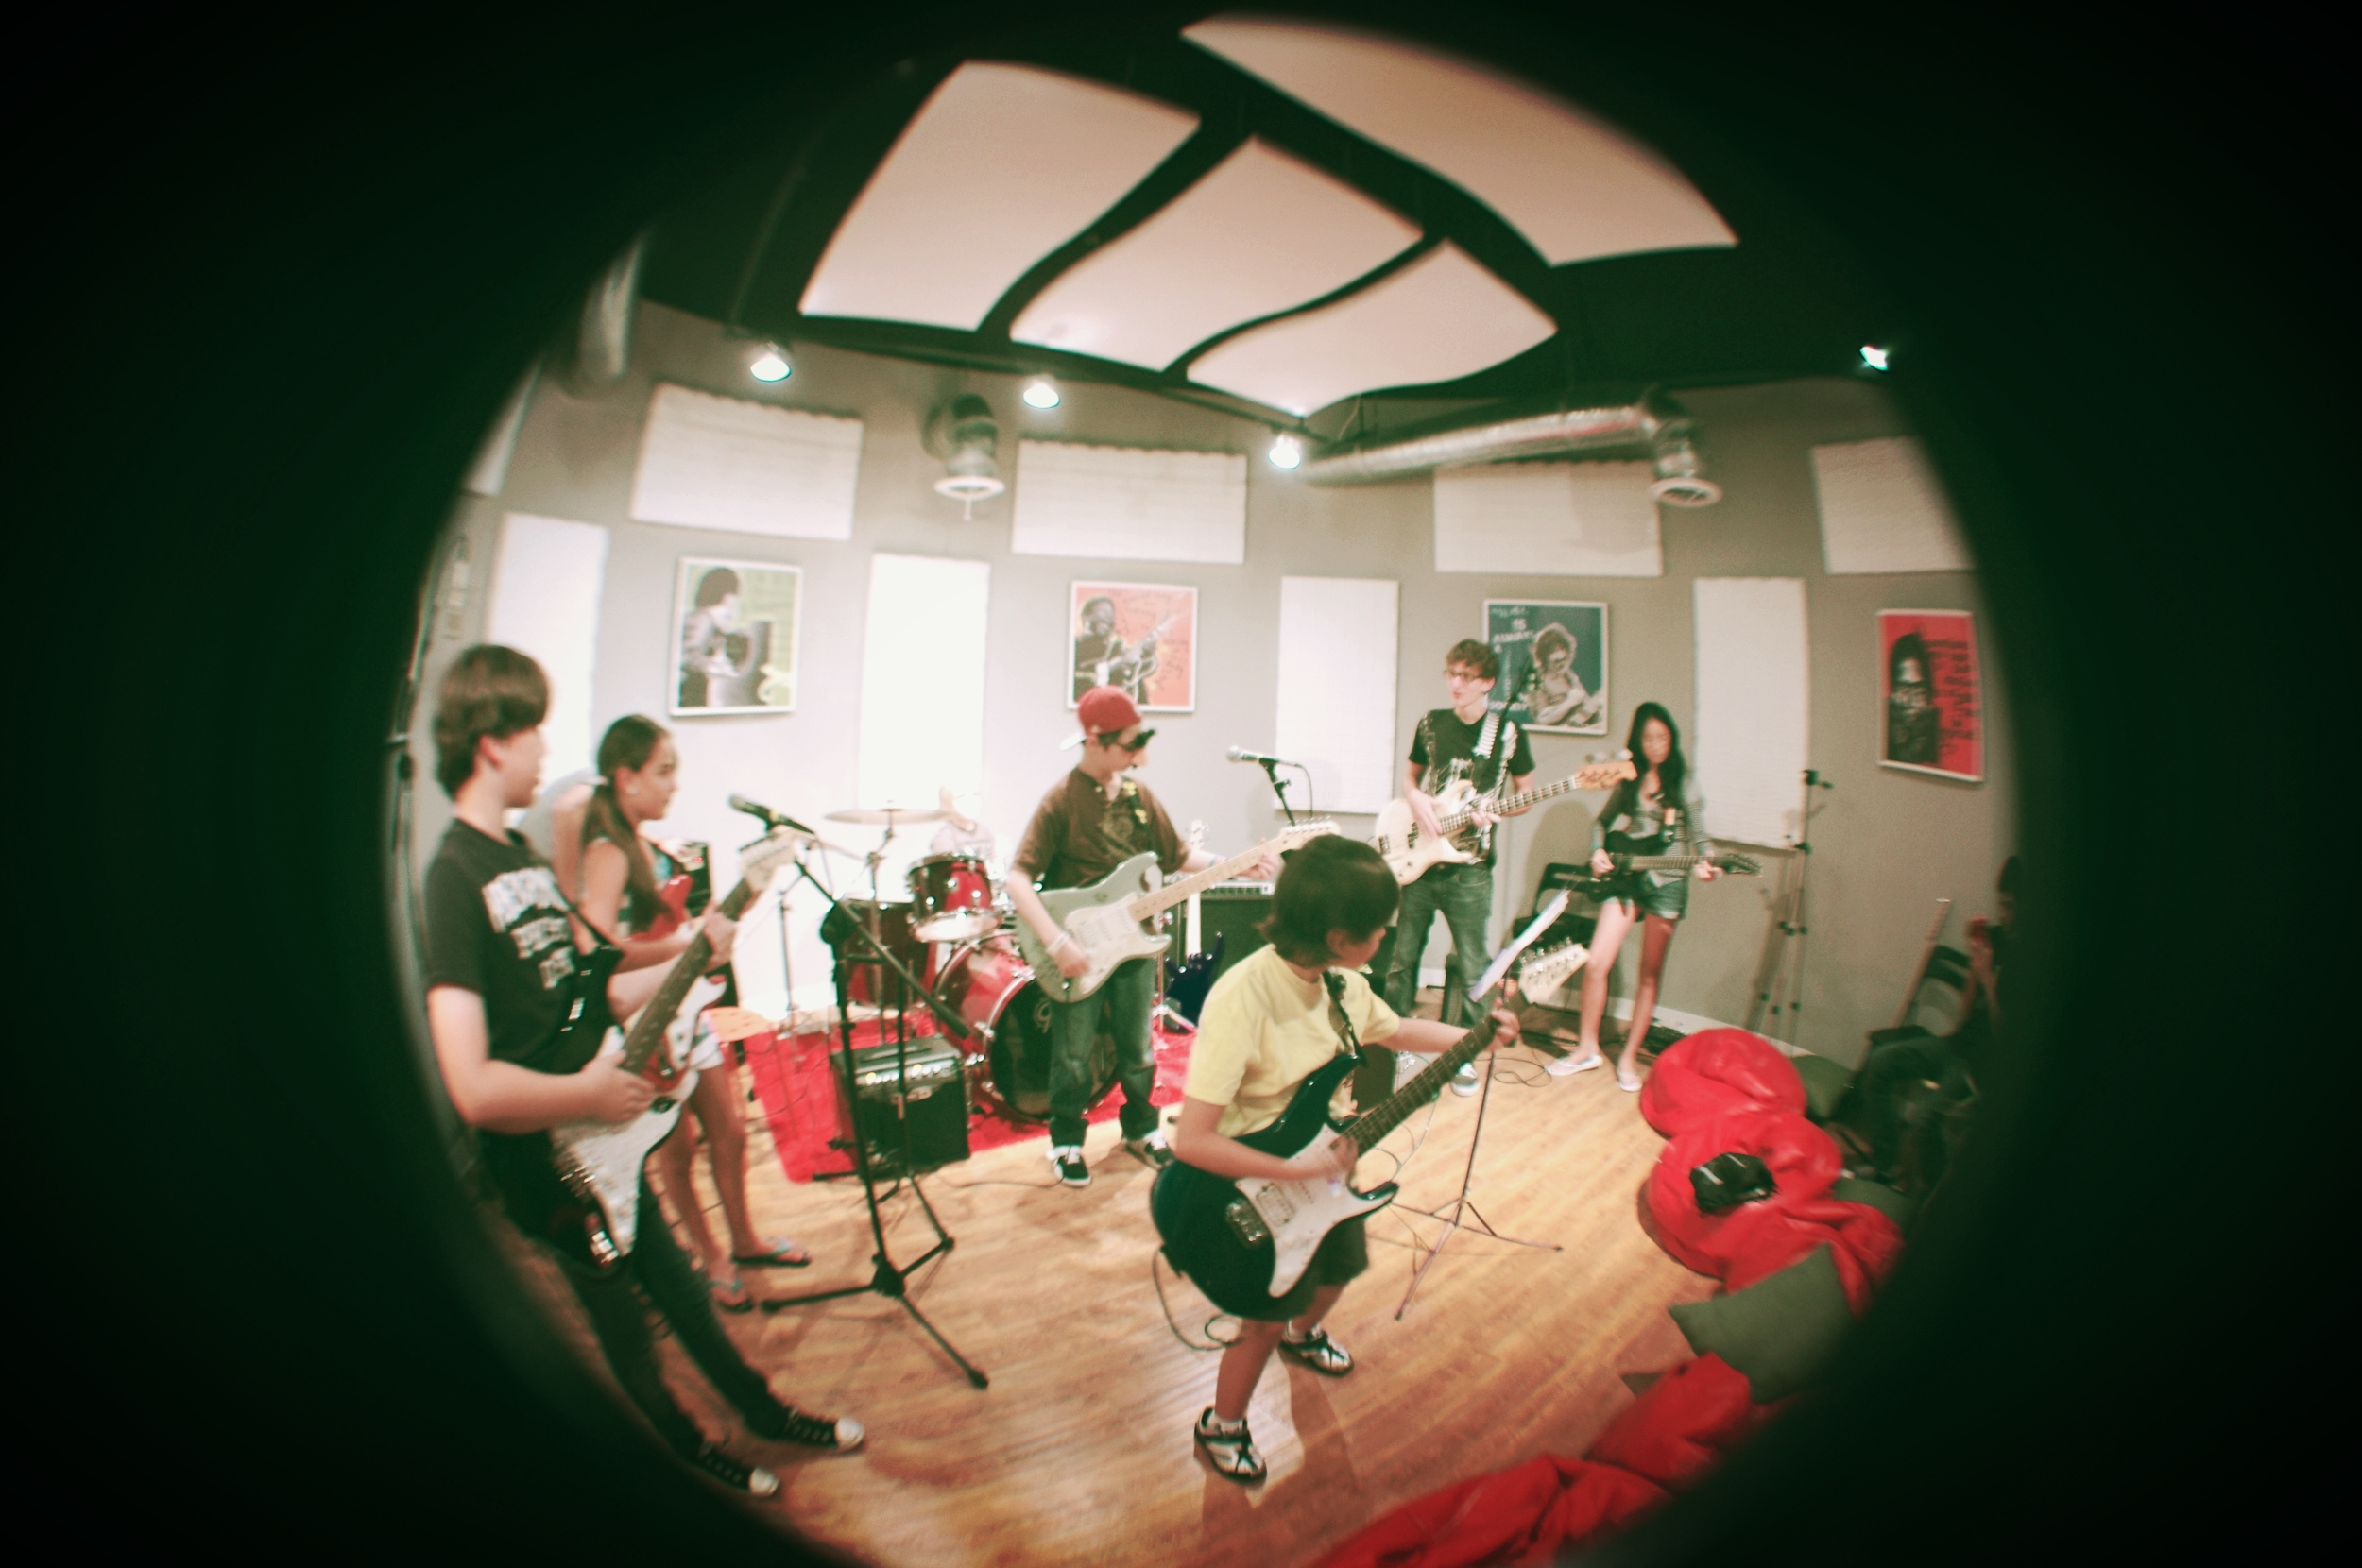 Throwback to 2011 Summer Camp Show at Live!'s studio.